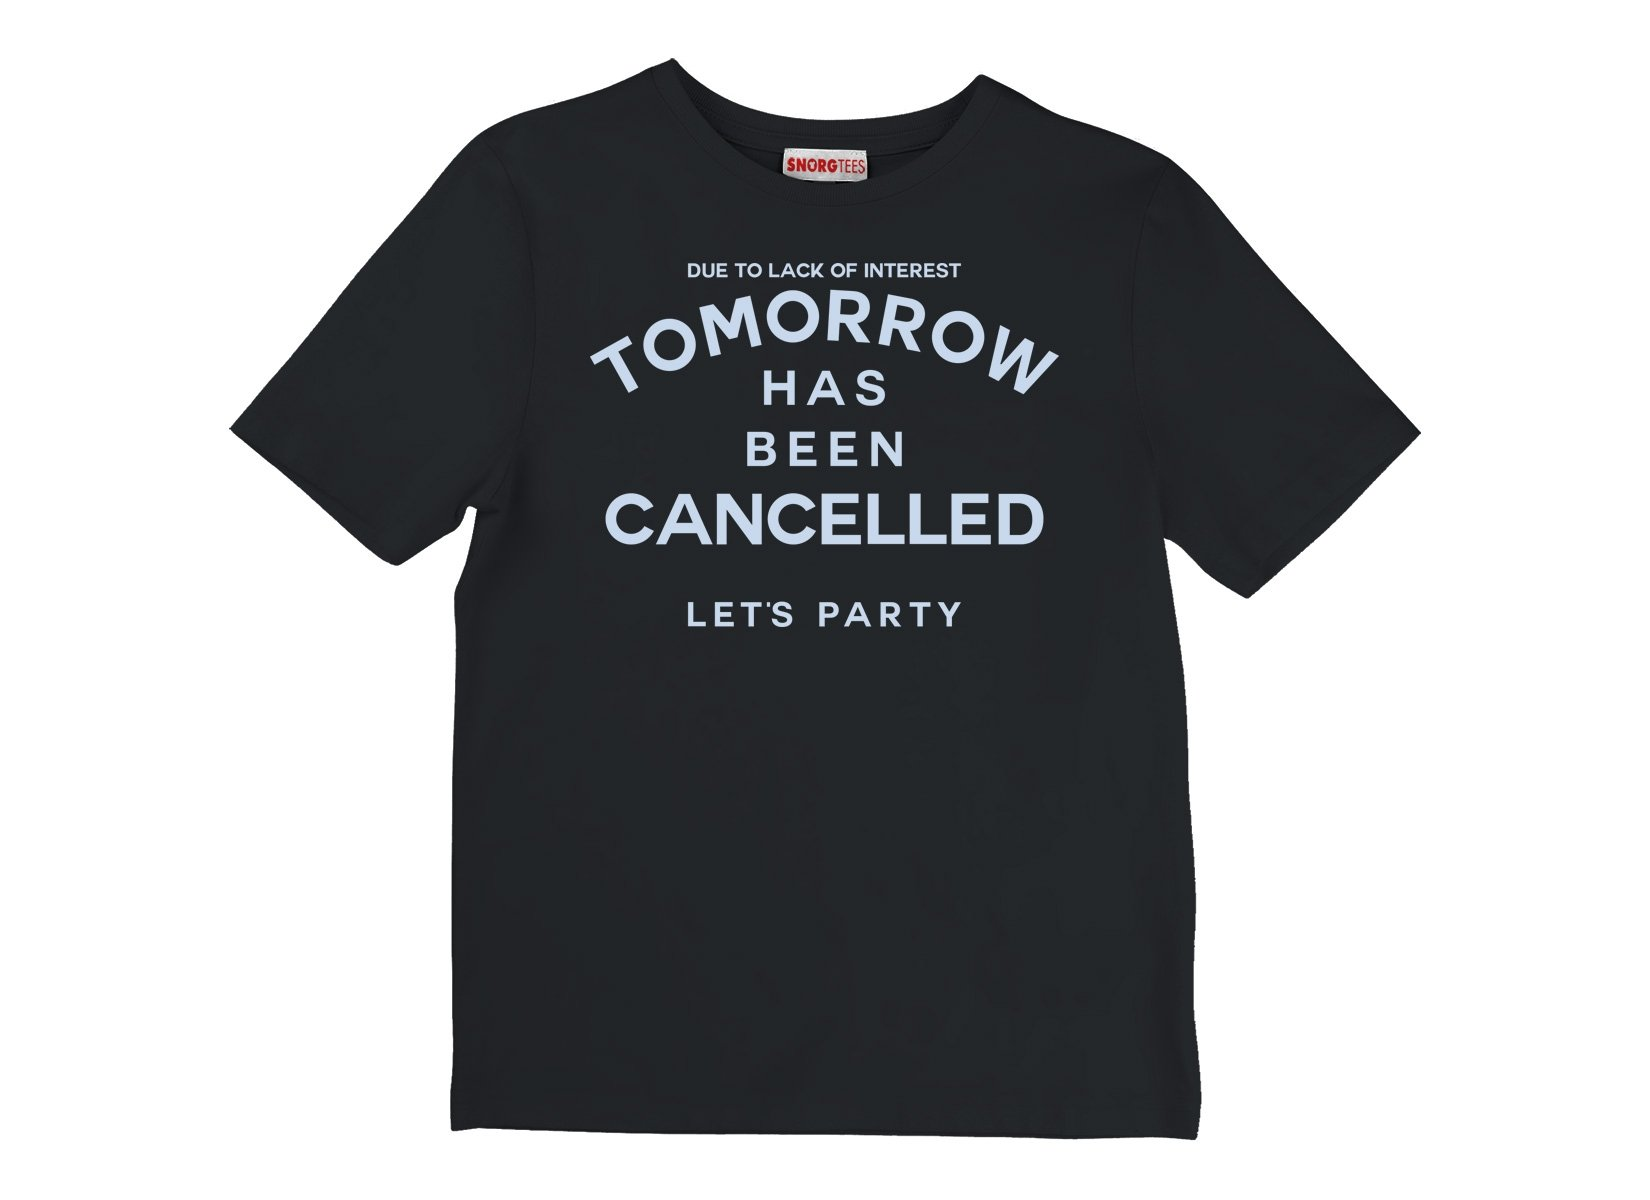 Tomorrow Has Been Cancelled on Kids T-Shirt